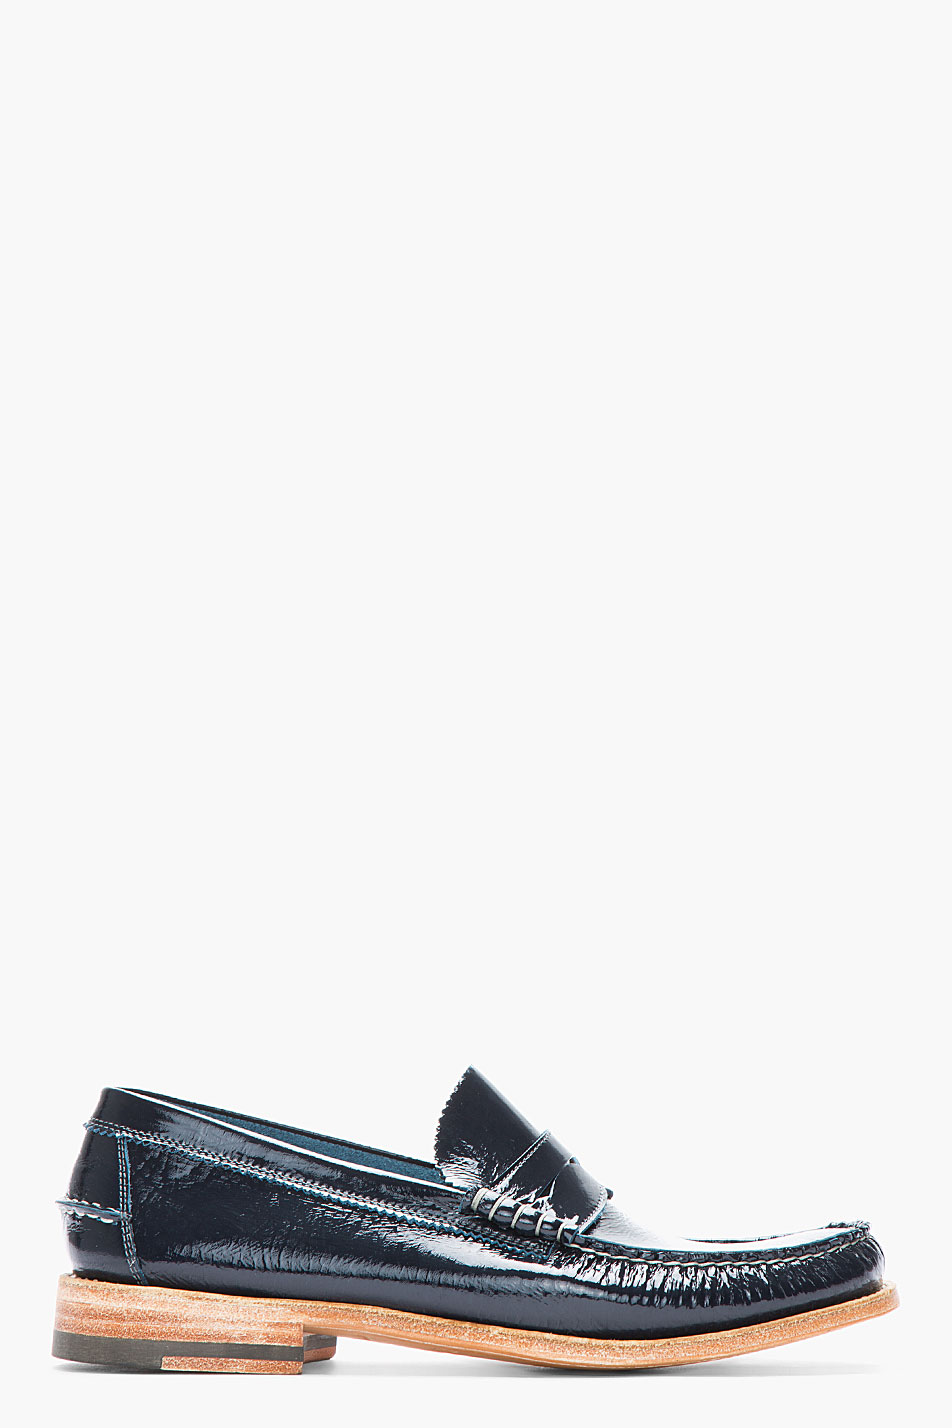 Lyst Ndc Navy Patent Leather Bachelor Luxor Penny